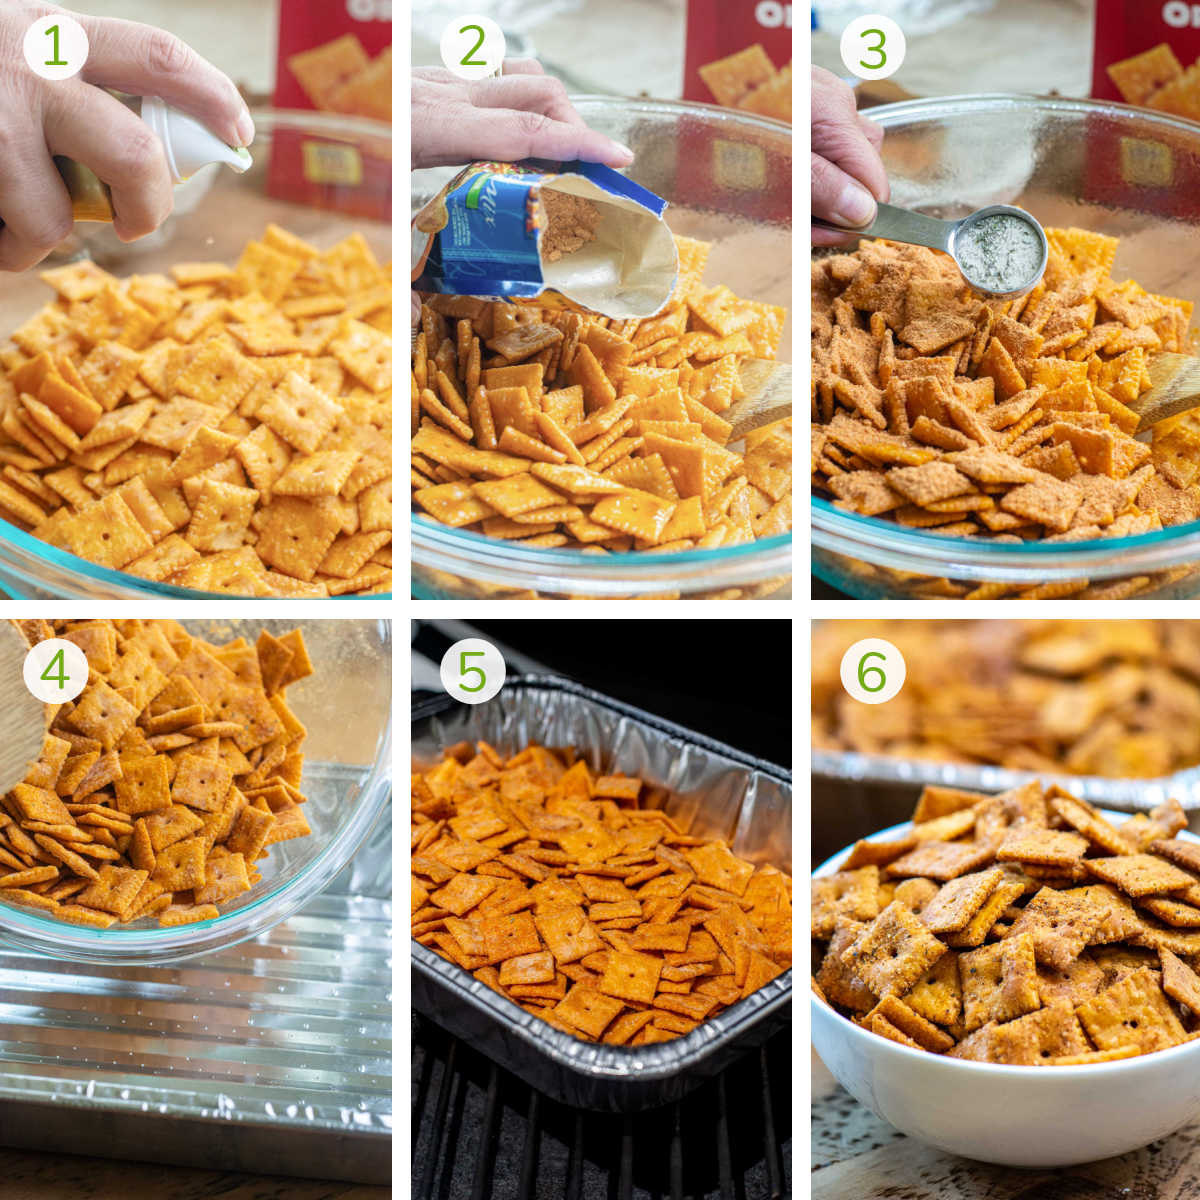 process photos showing seasoning the cheez its, adding to a disposable pan, smoking and serving.